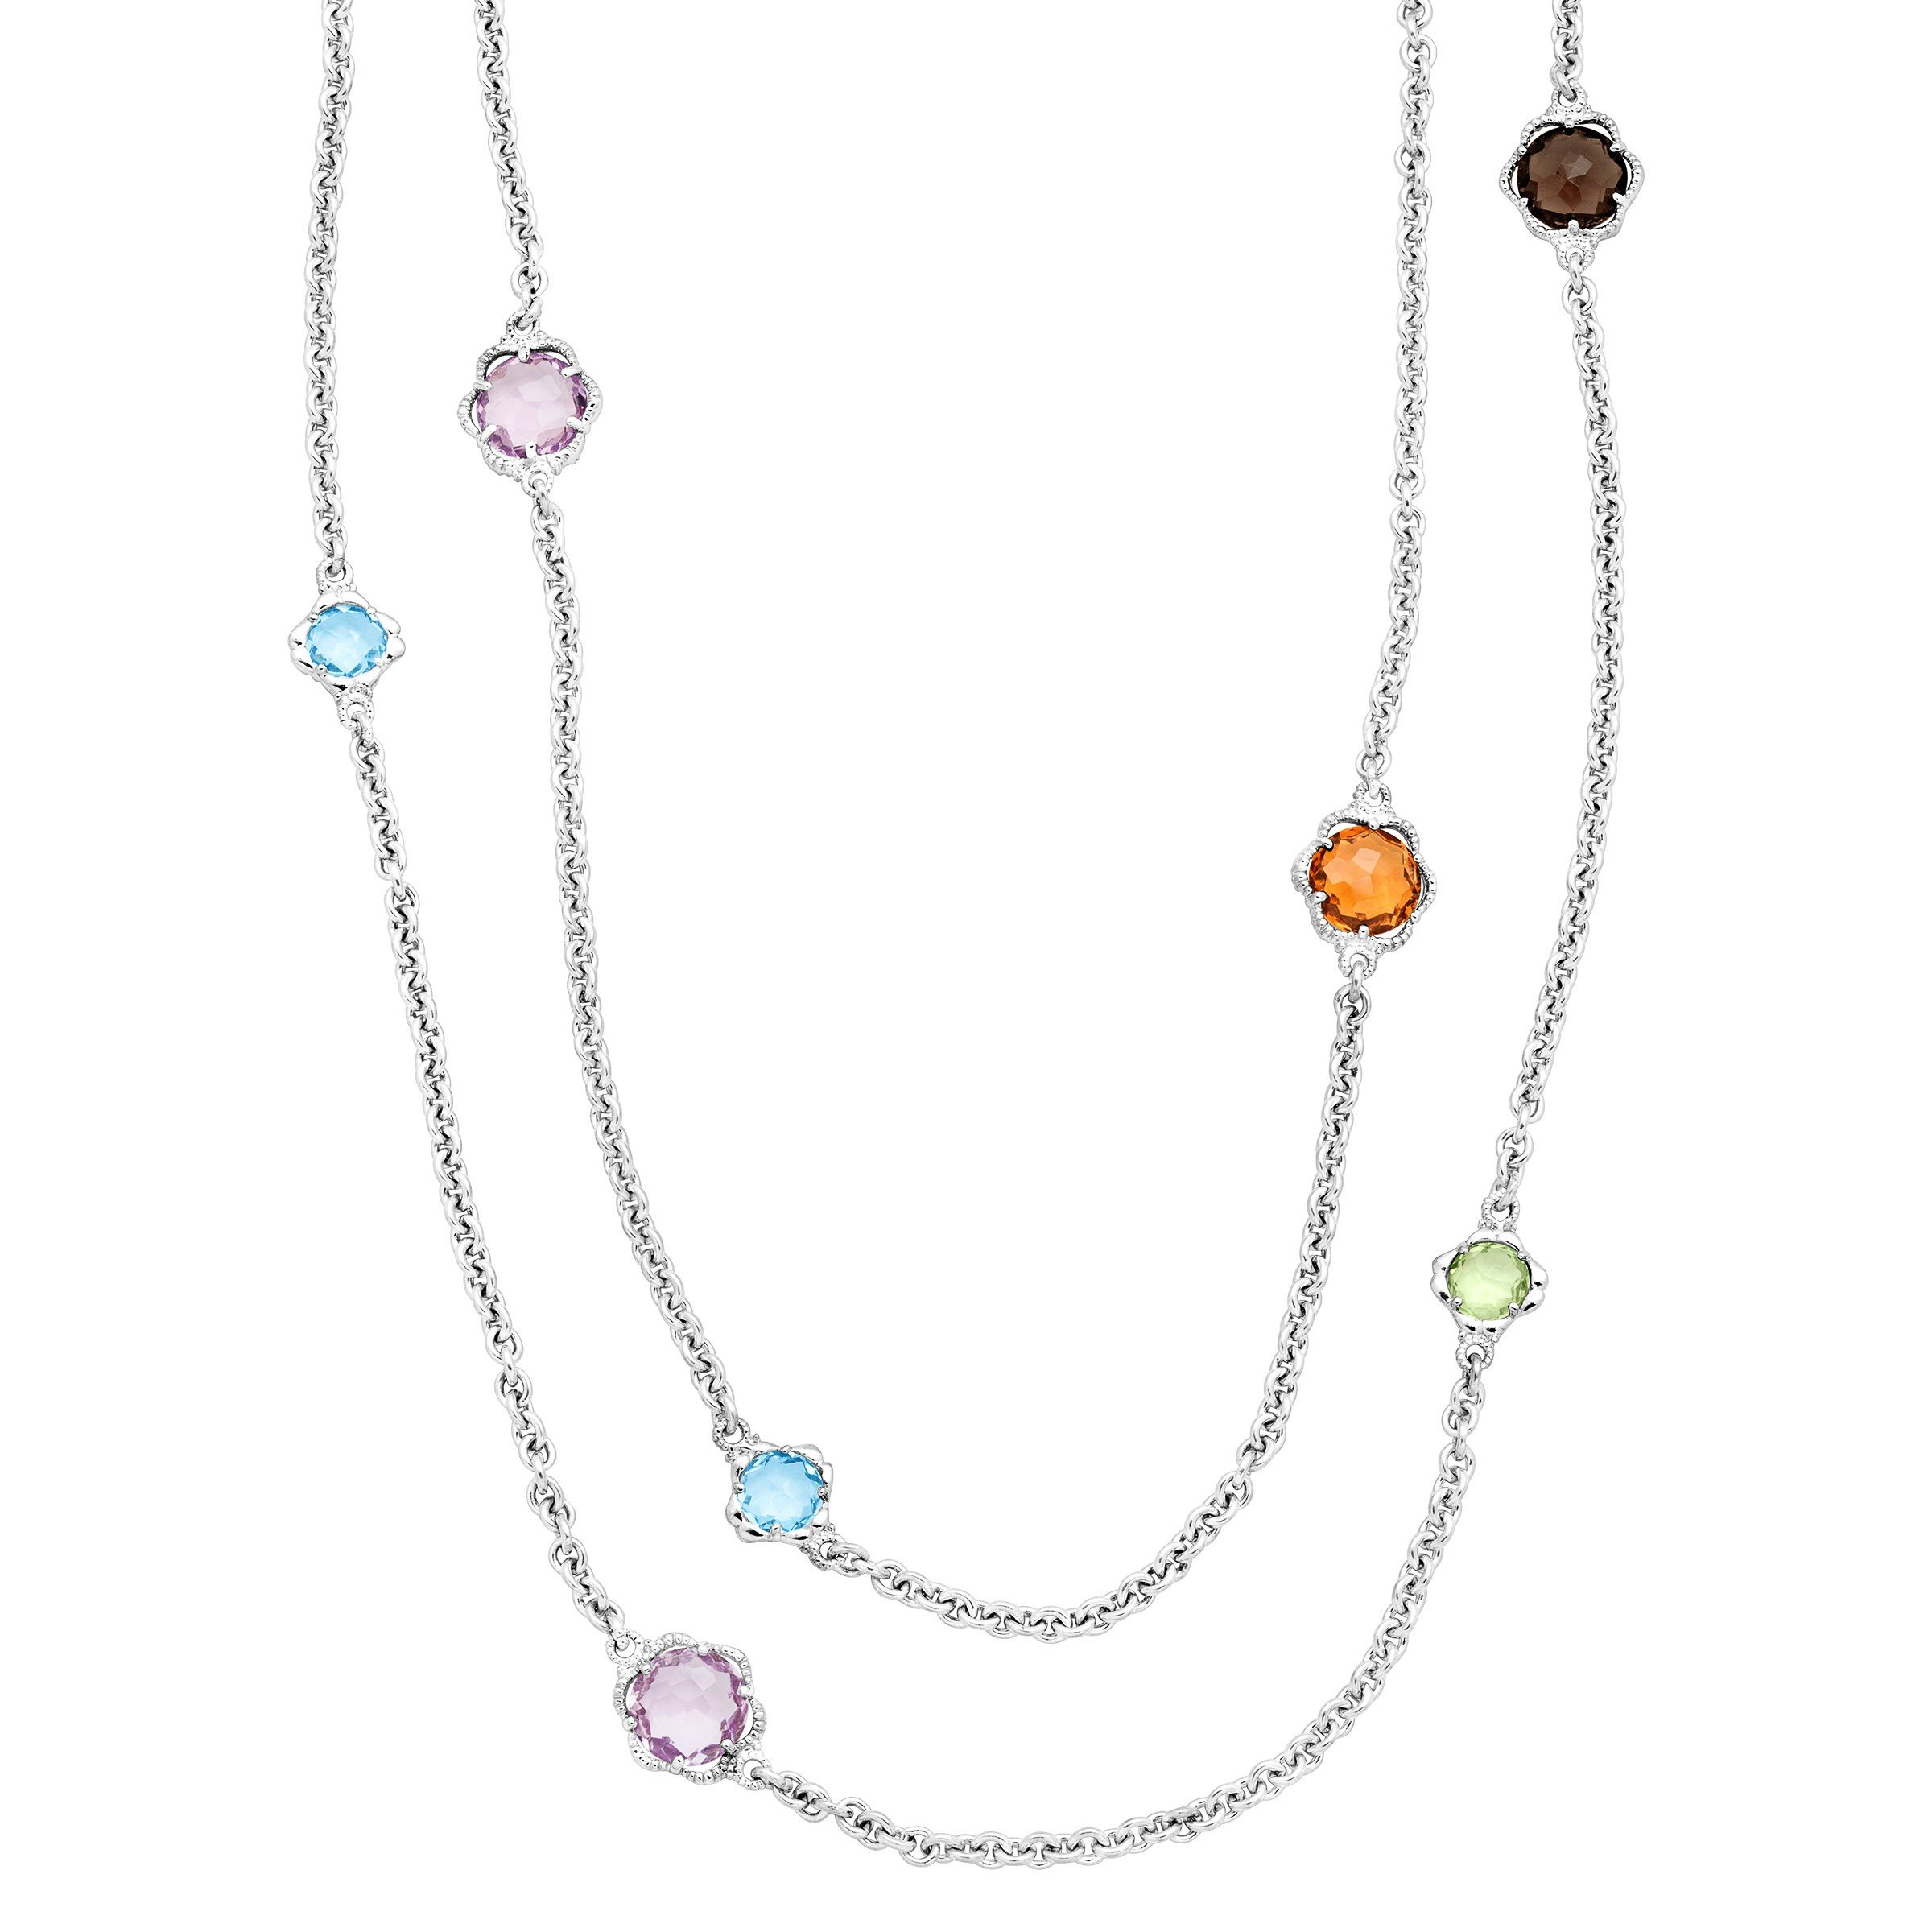 Flower Station Necklace with Natural Multi-Gems in Sterling Silver, 36''